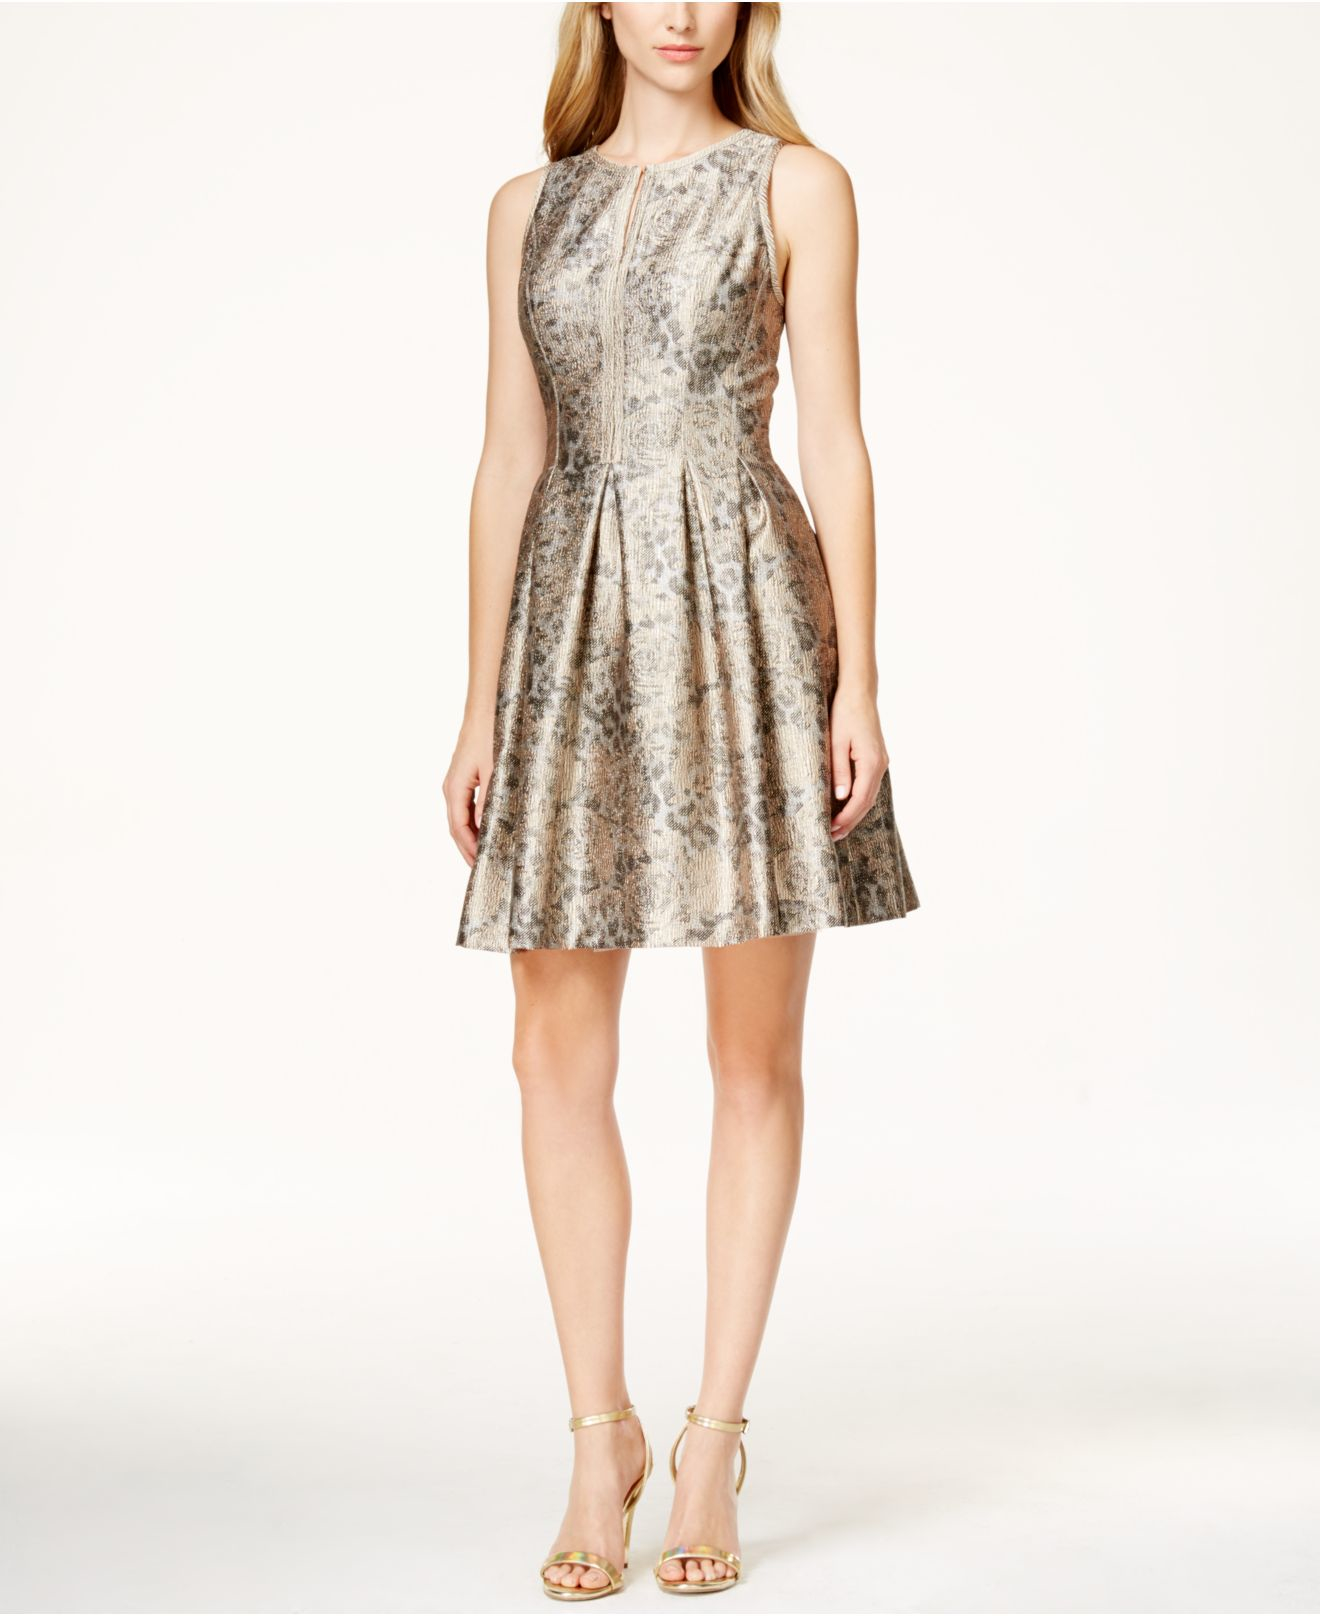 eaa6195990c3 Vince Camuto Metallic Jacquard Flare Dress in Metallic - Lyst